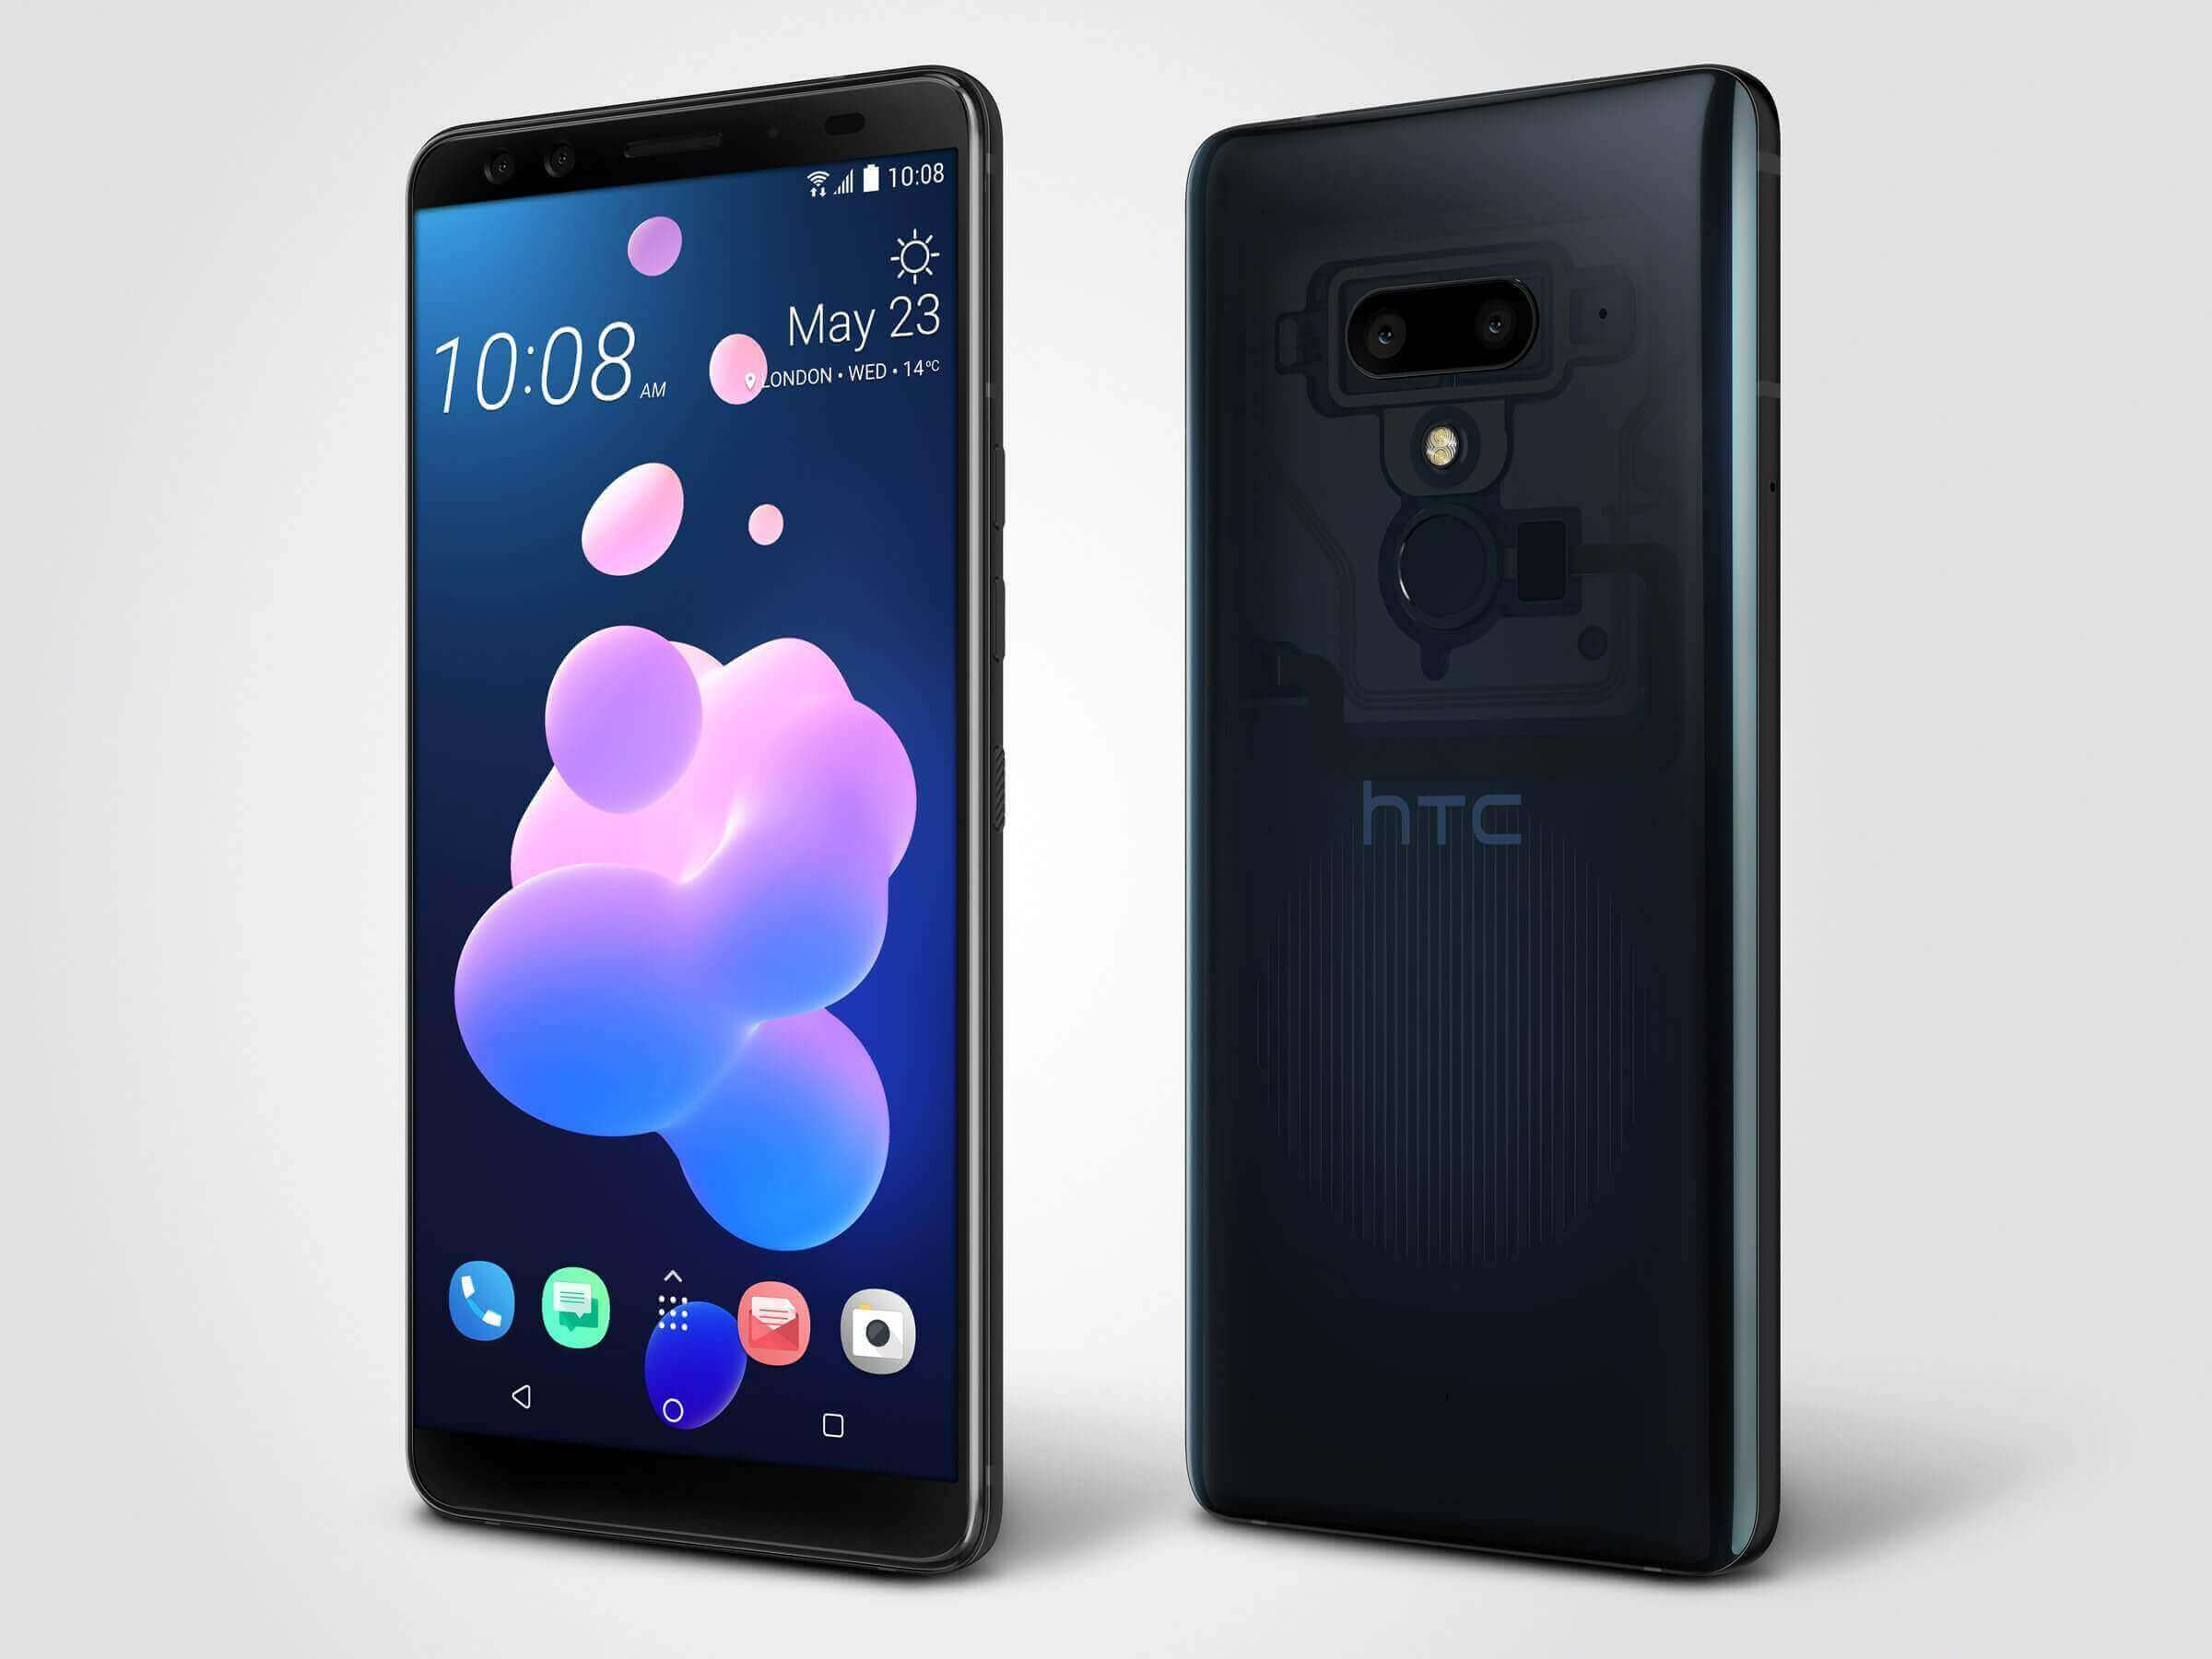 2. HTC U12+ Best Smartphones July 2018 [Top 10] (Average Cost)